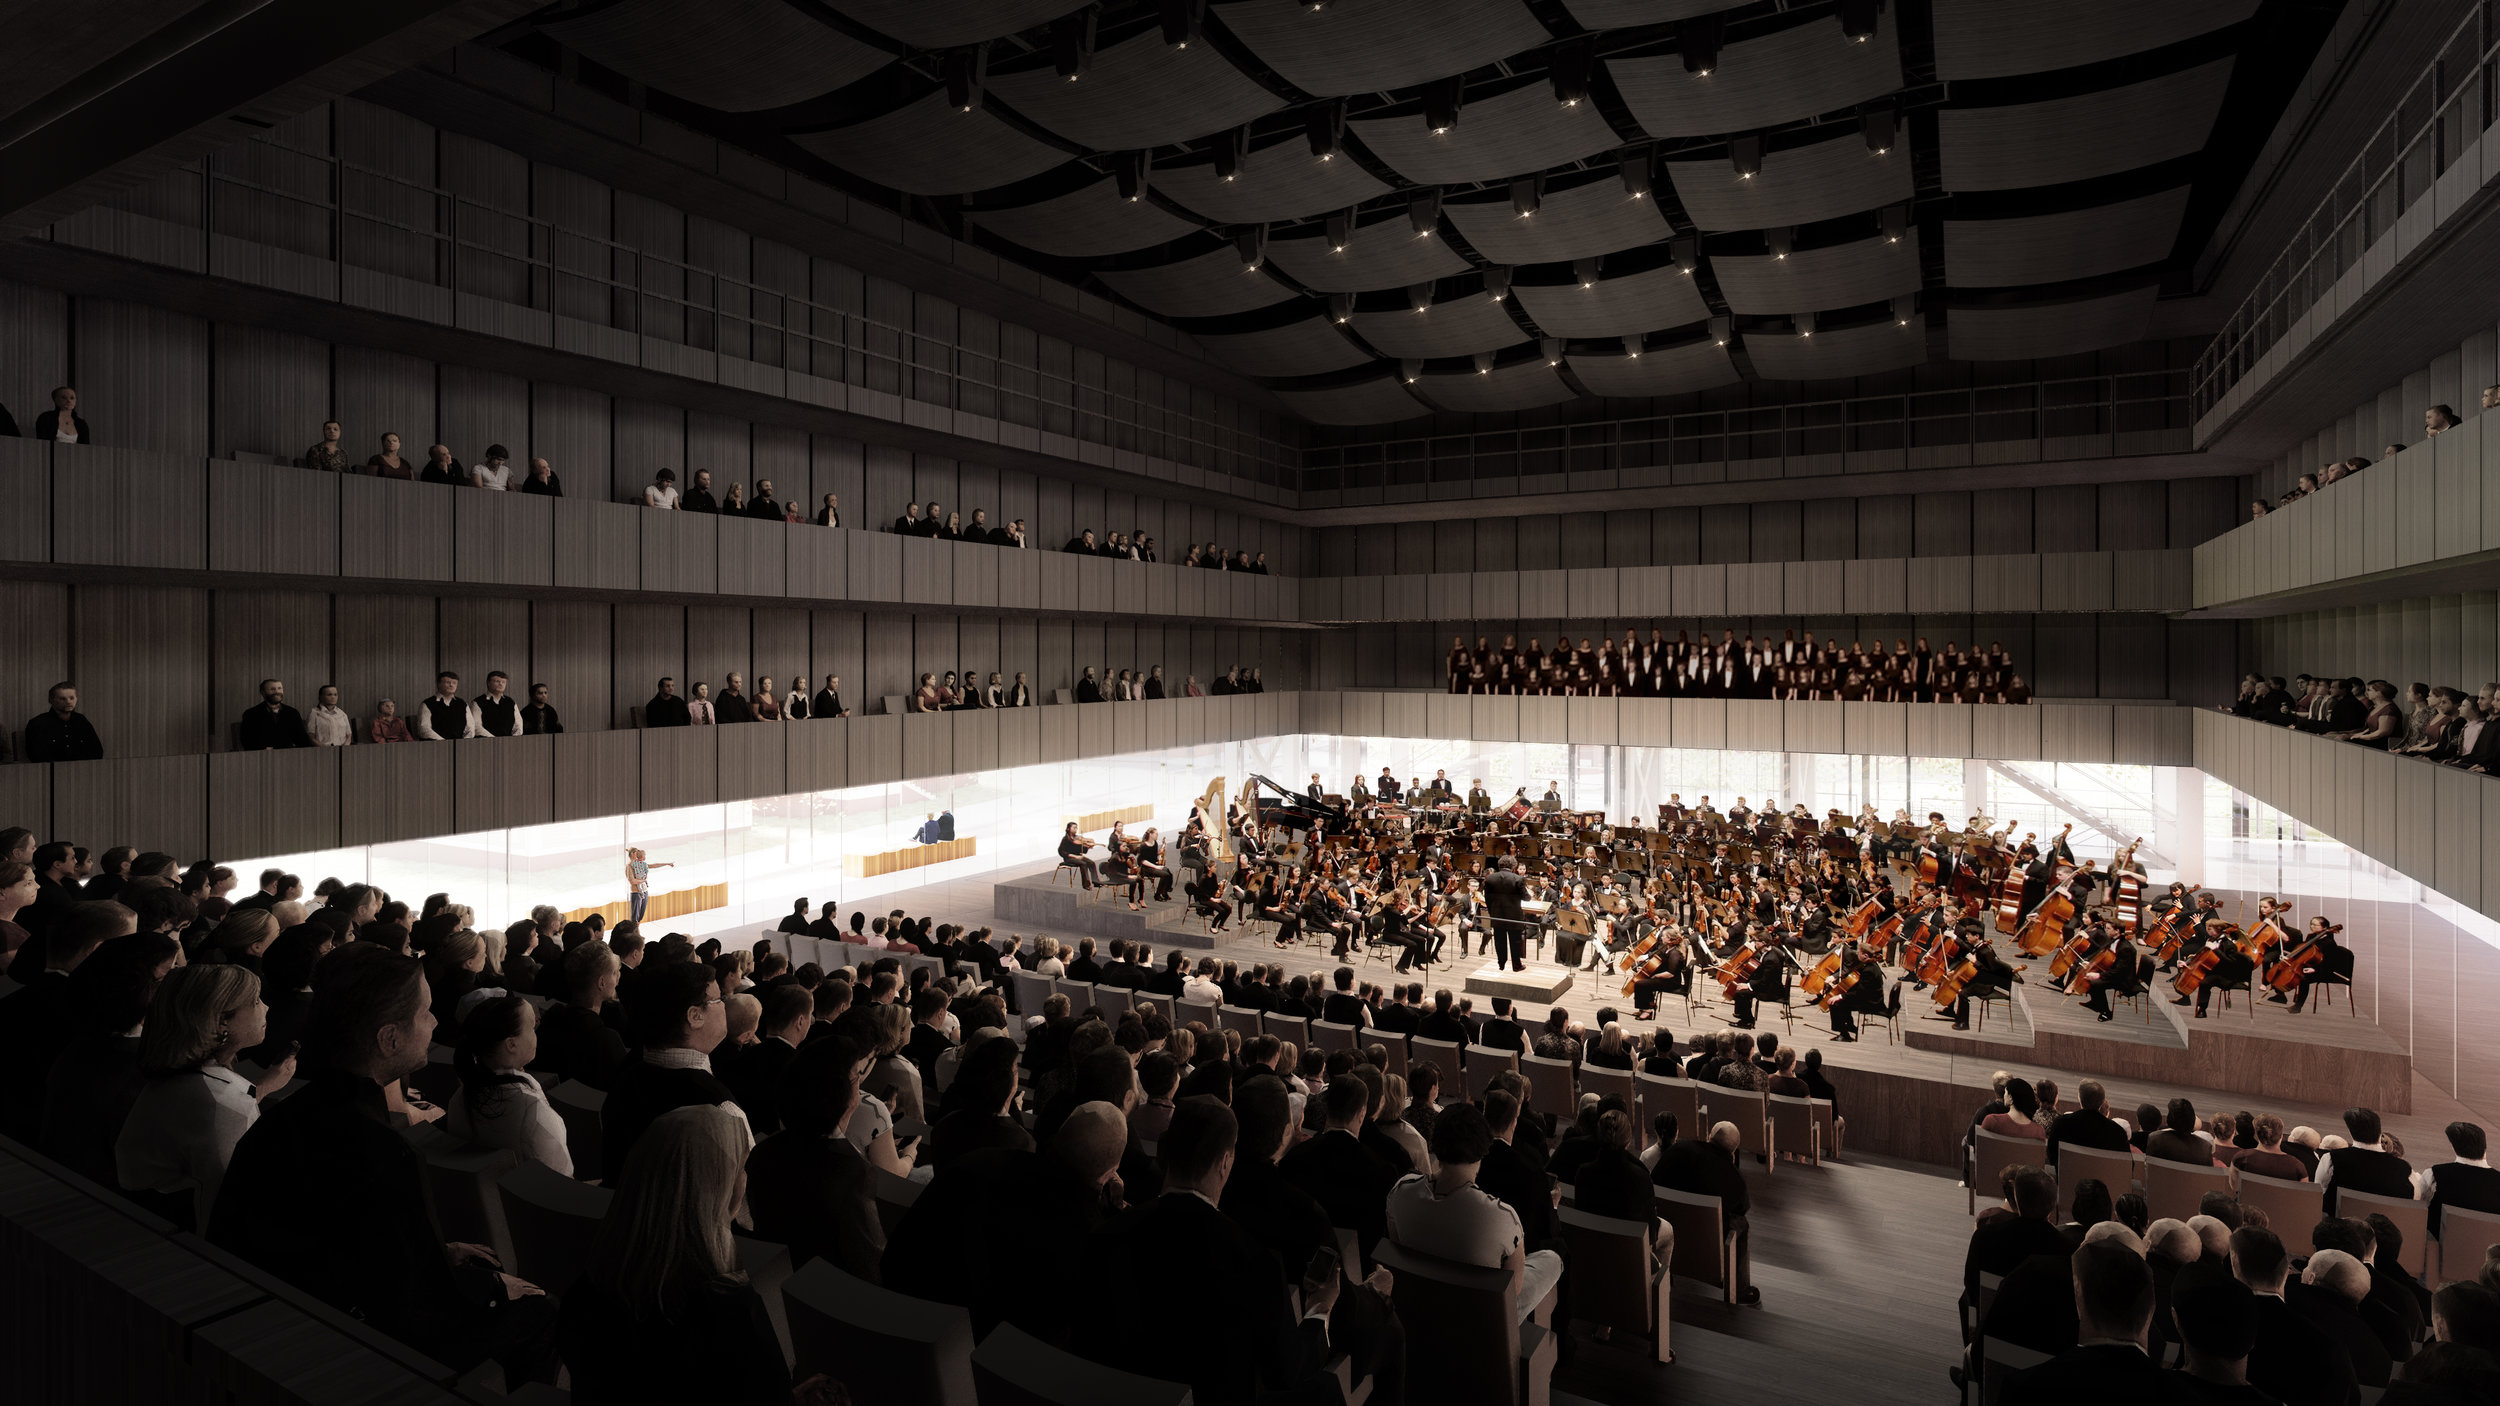 181008_Main Hall_Orchestra mode.jpg